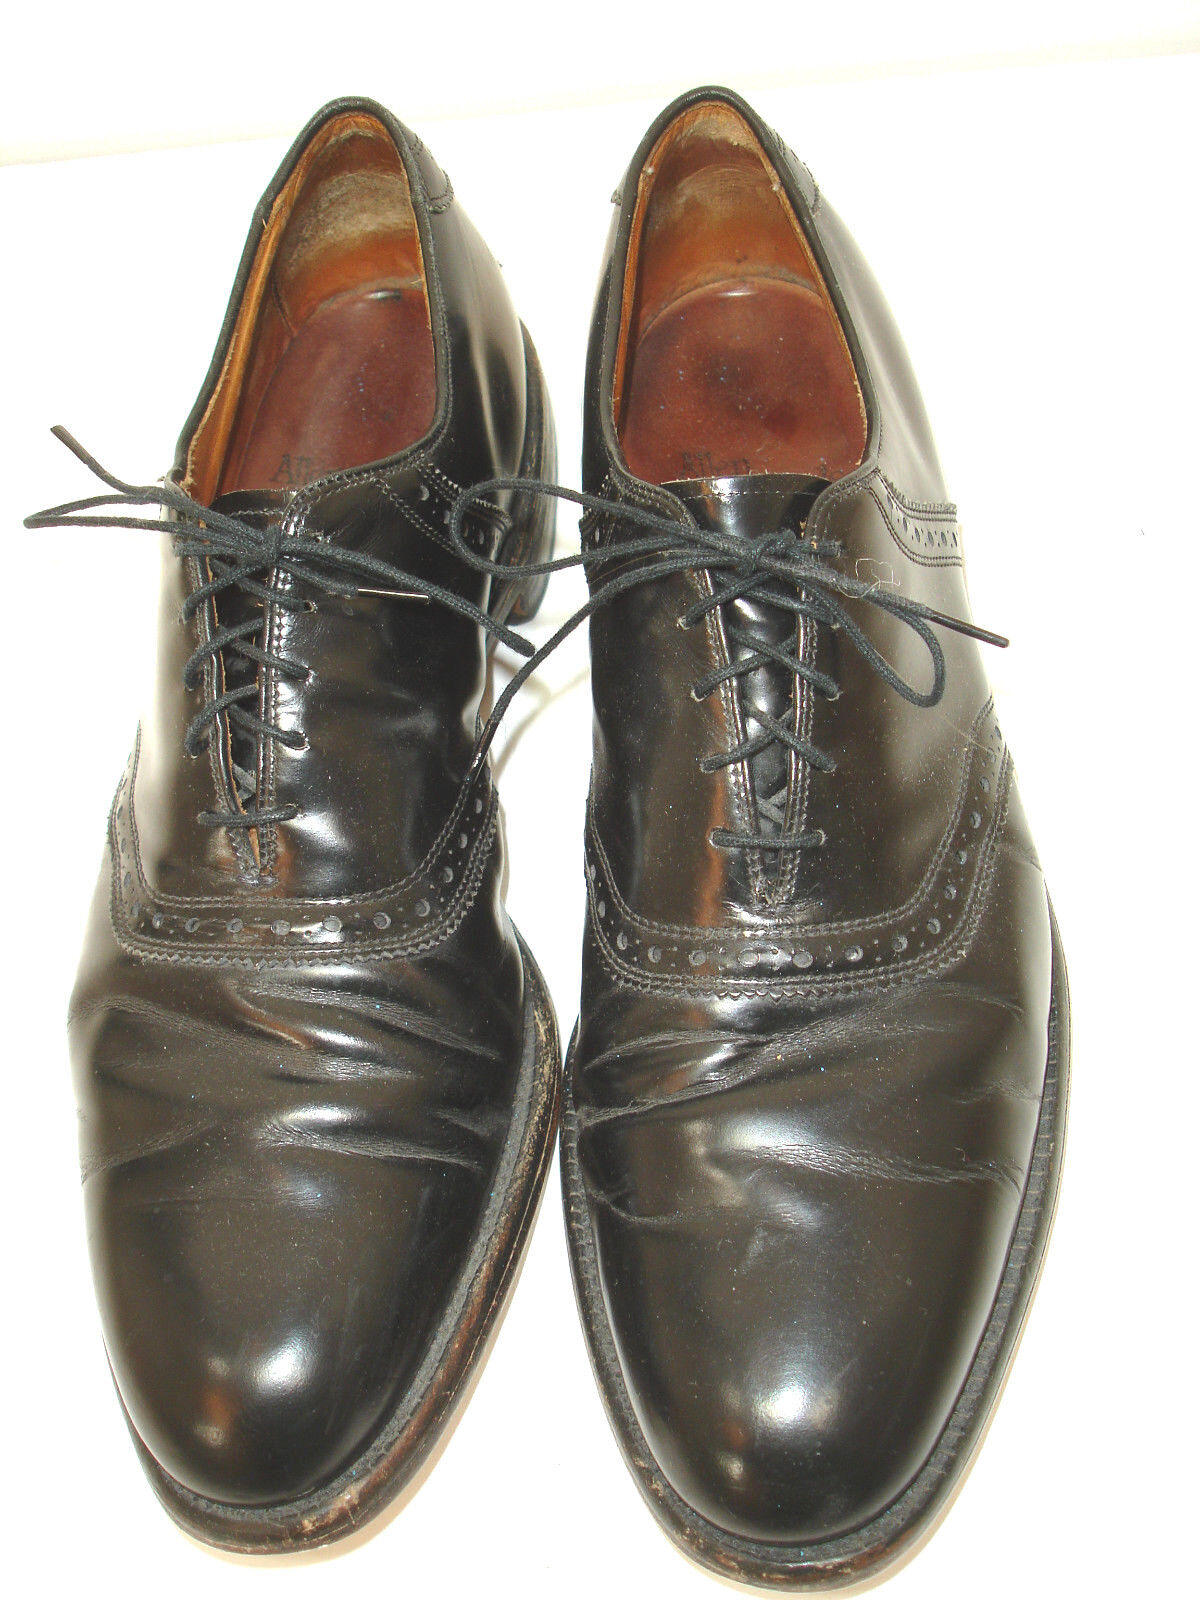 Allen Edmonds Polo Black Leather Lace Up Oxford shoes 12 A Made in USA